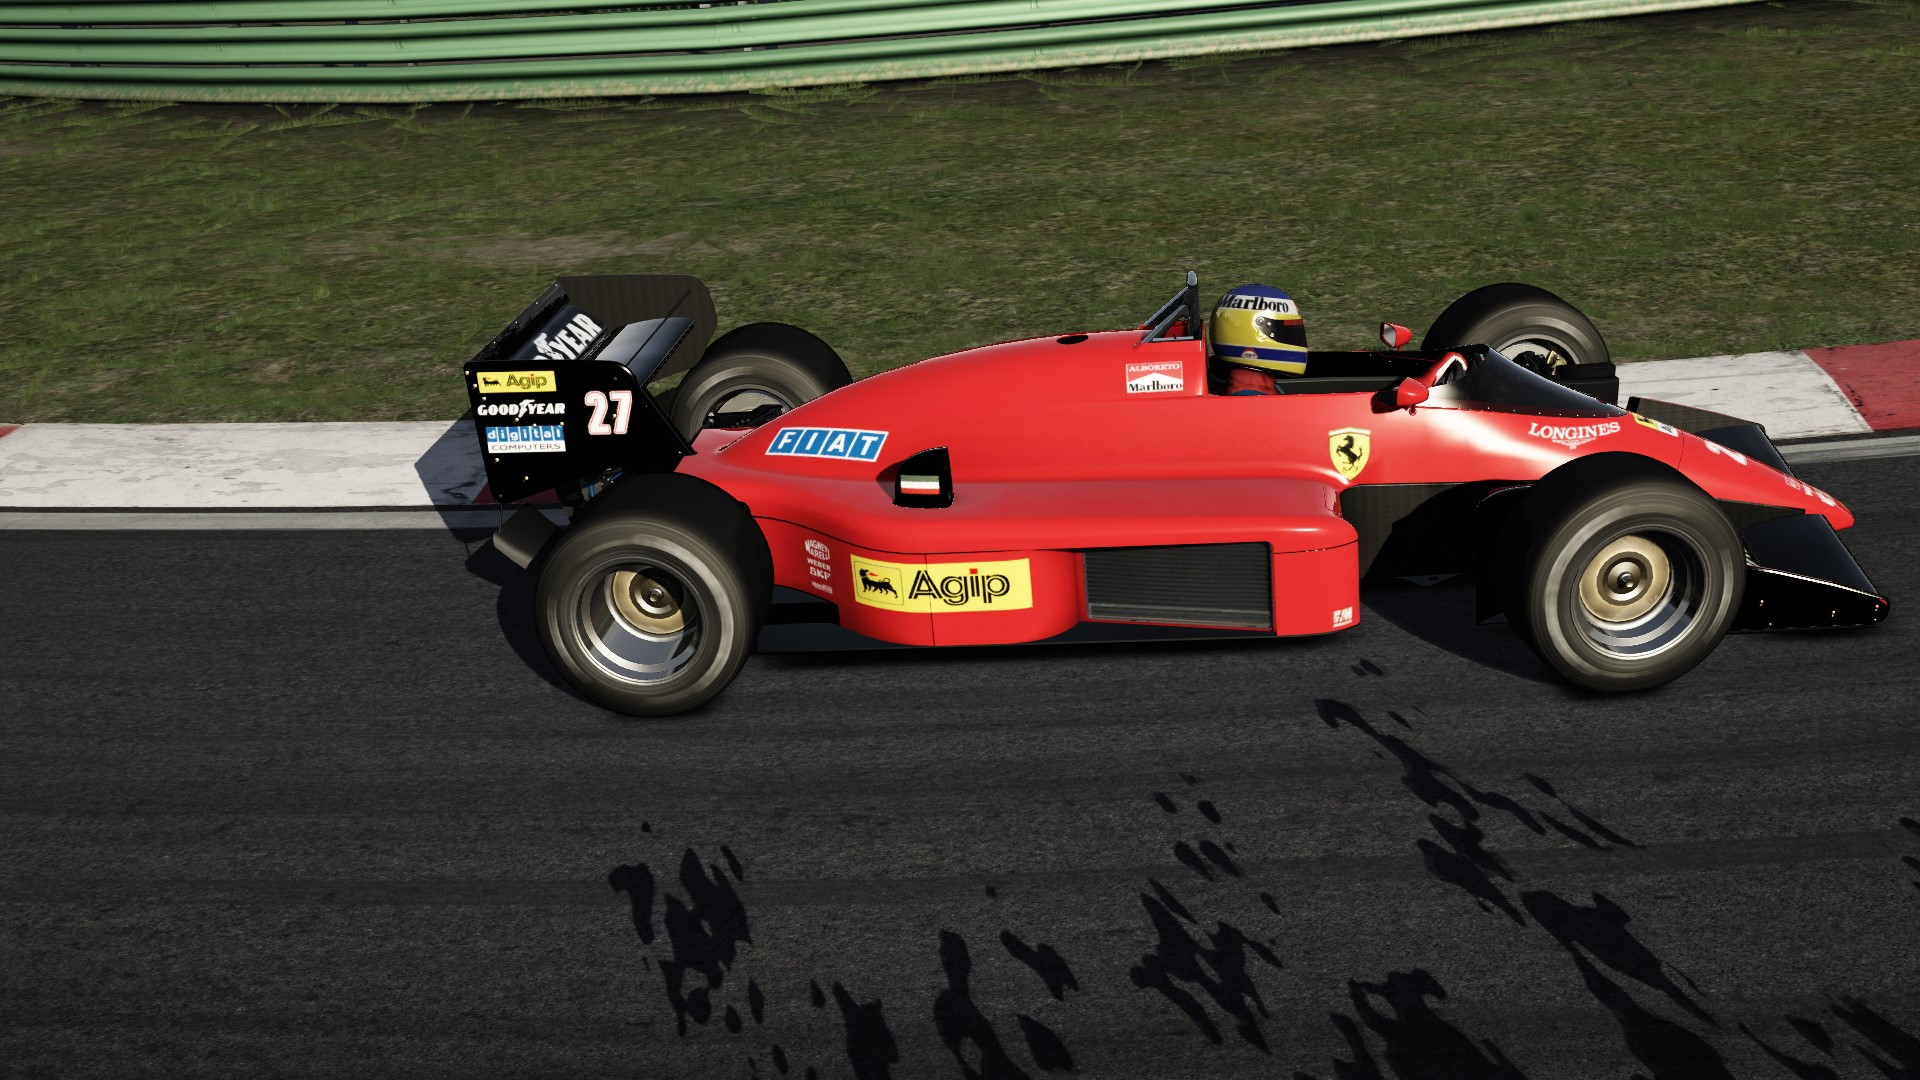 Screenshot_lotus_98t_imola_24-7-2014-0-42-19.jpg